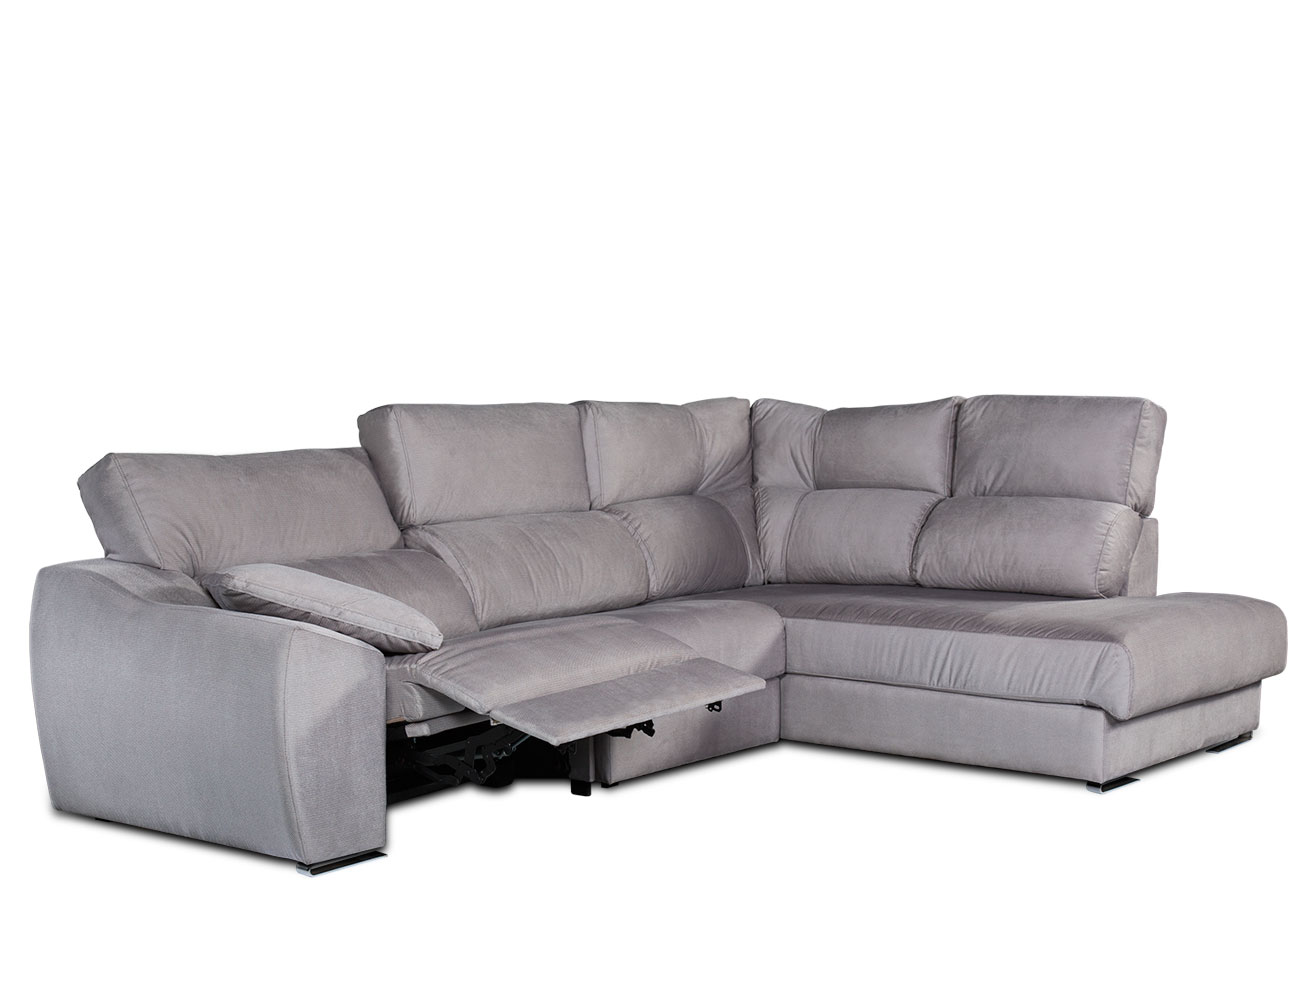 Sofa chaiselongue rincon electrico 22